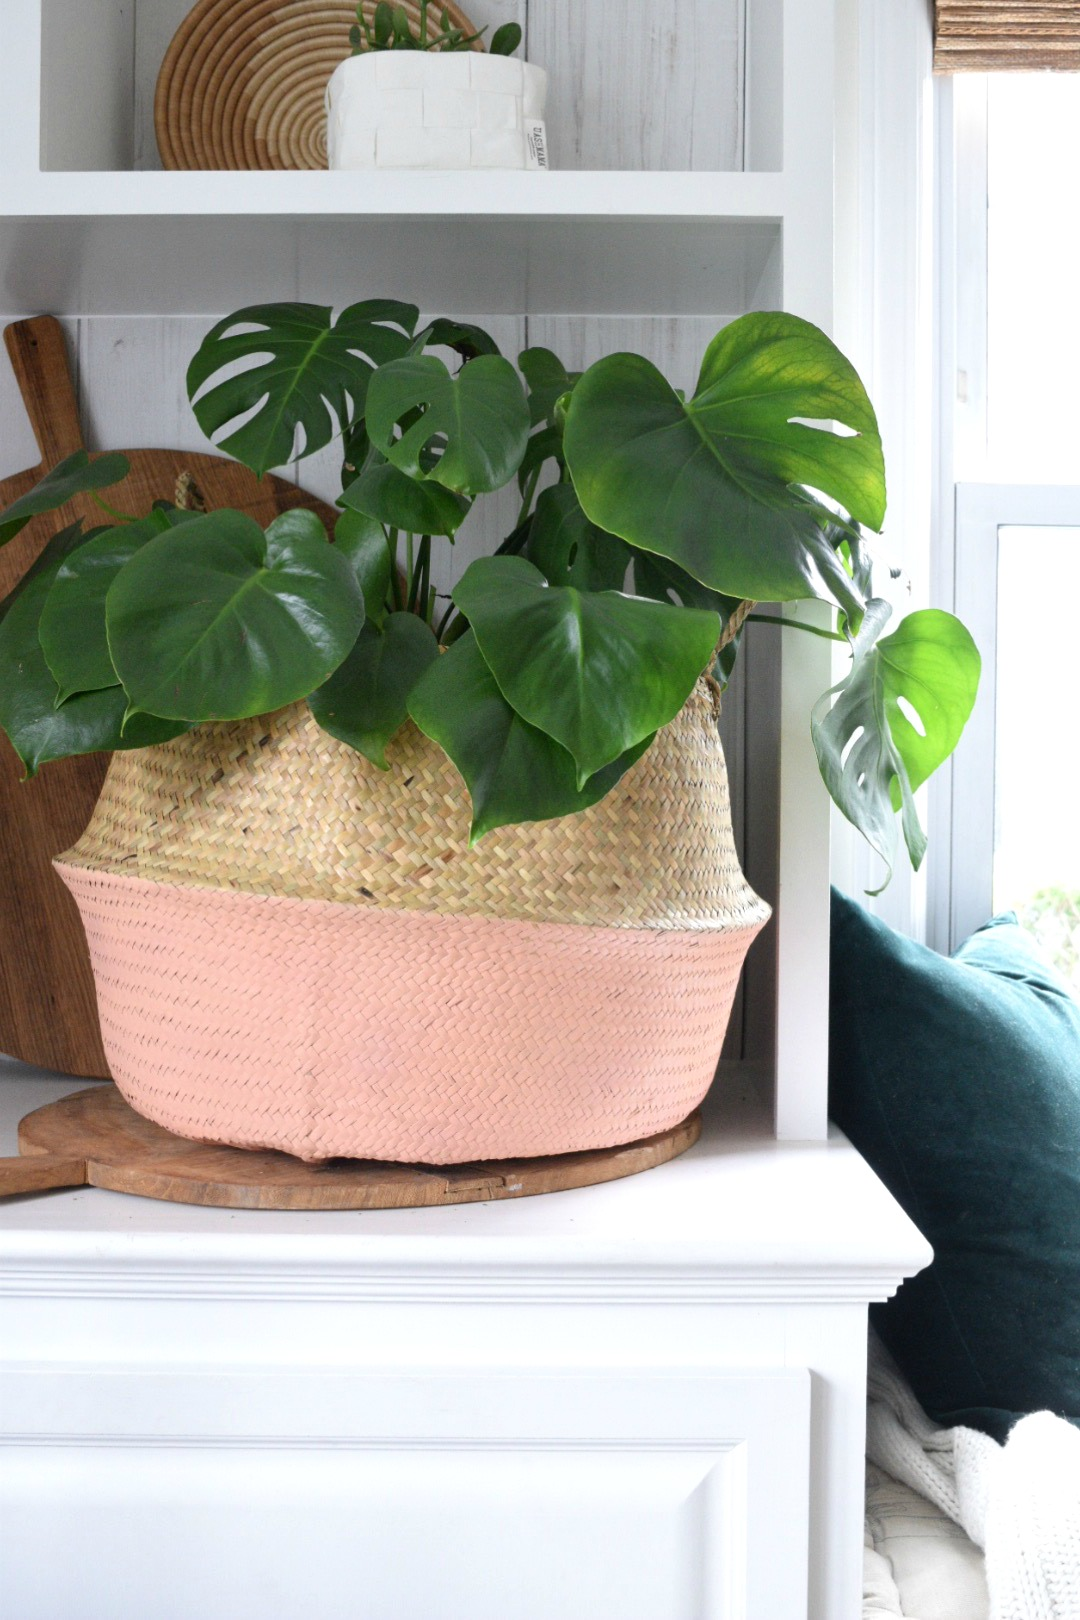 Friday Favorites- Baskets for Houseplants and Tips!